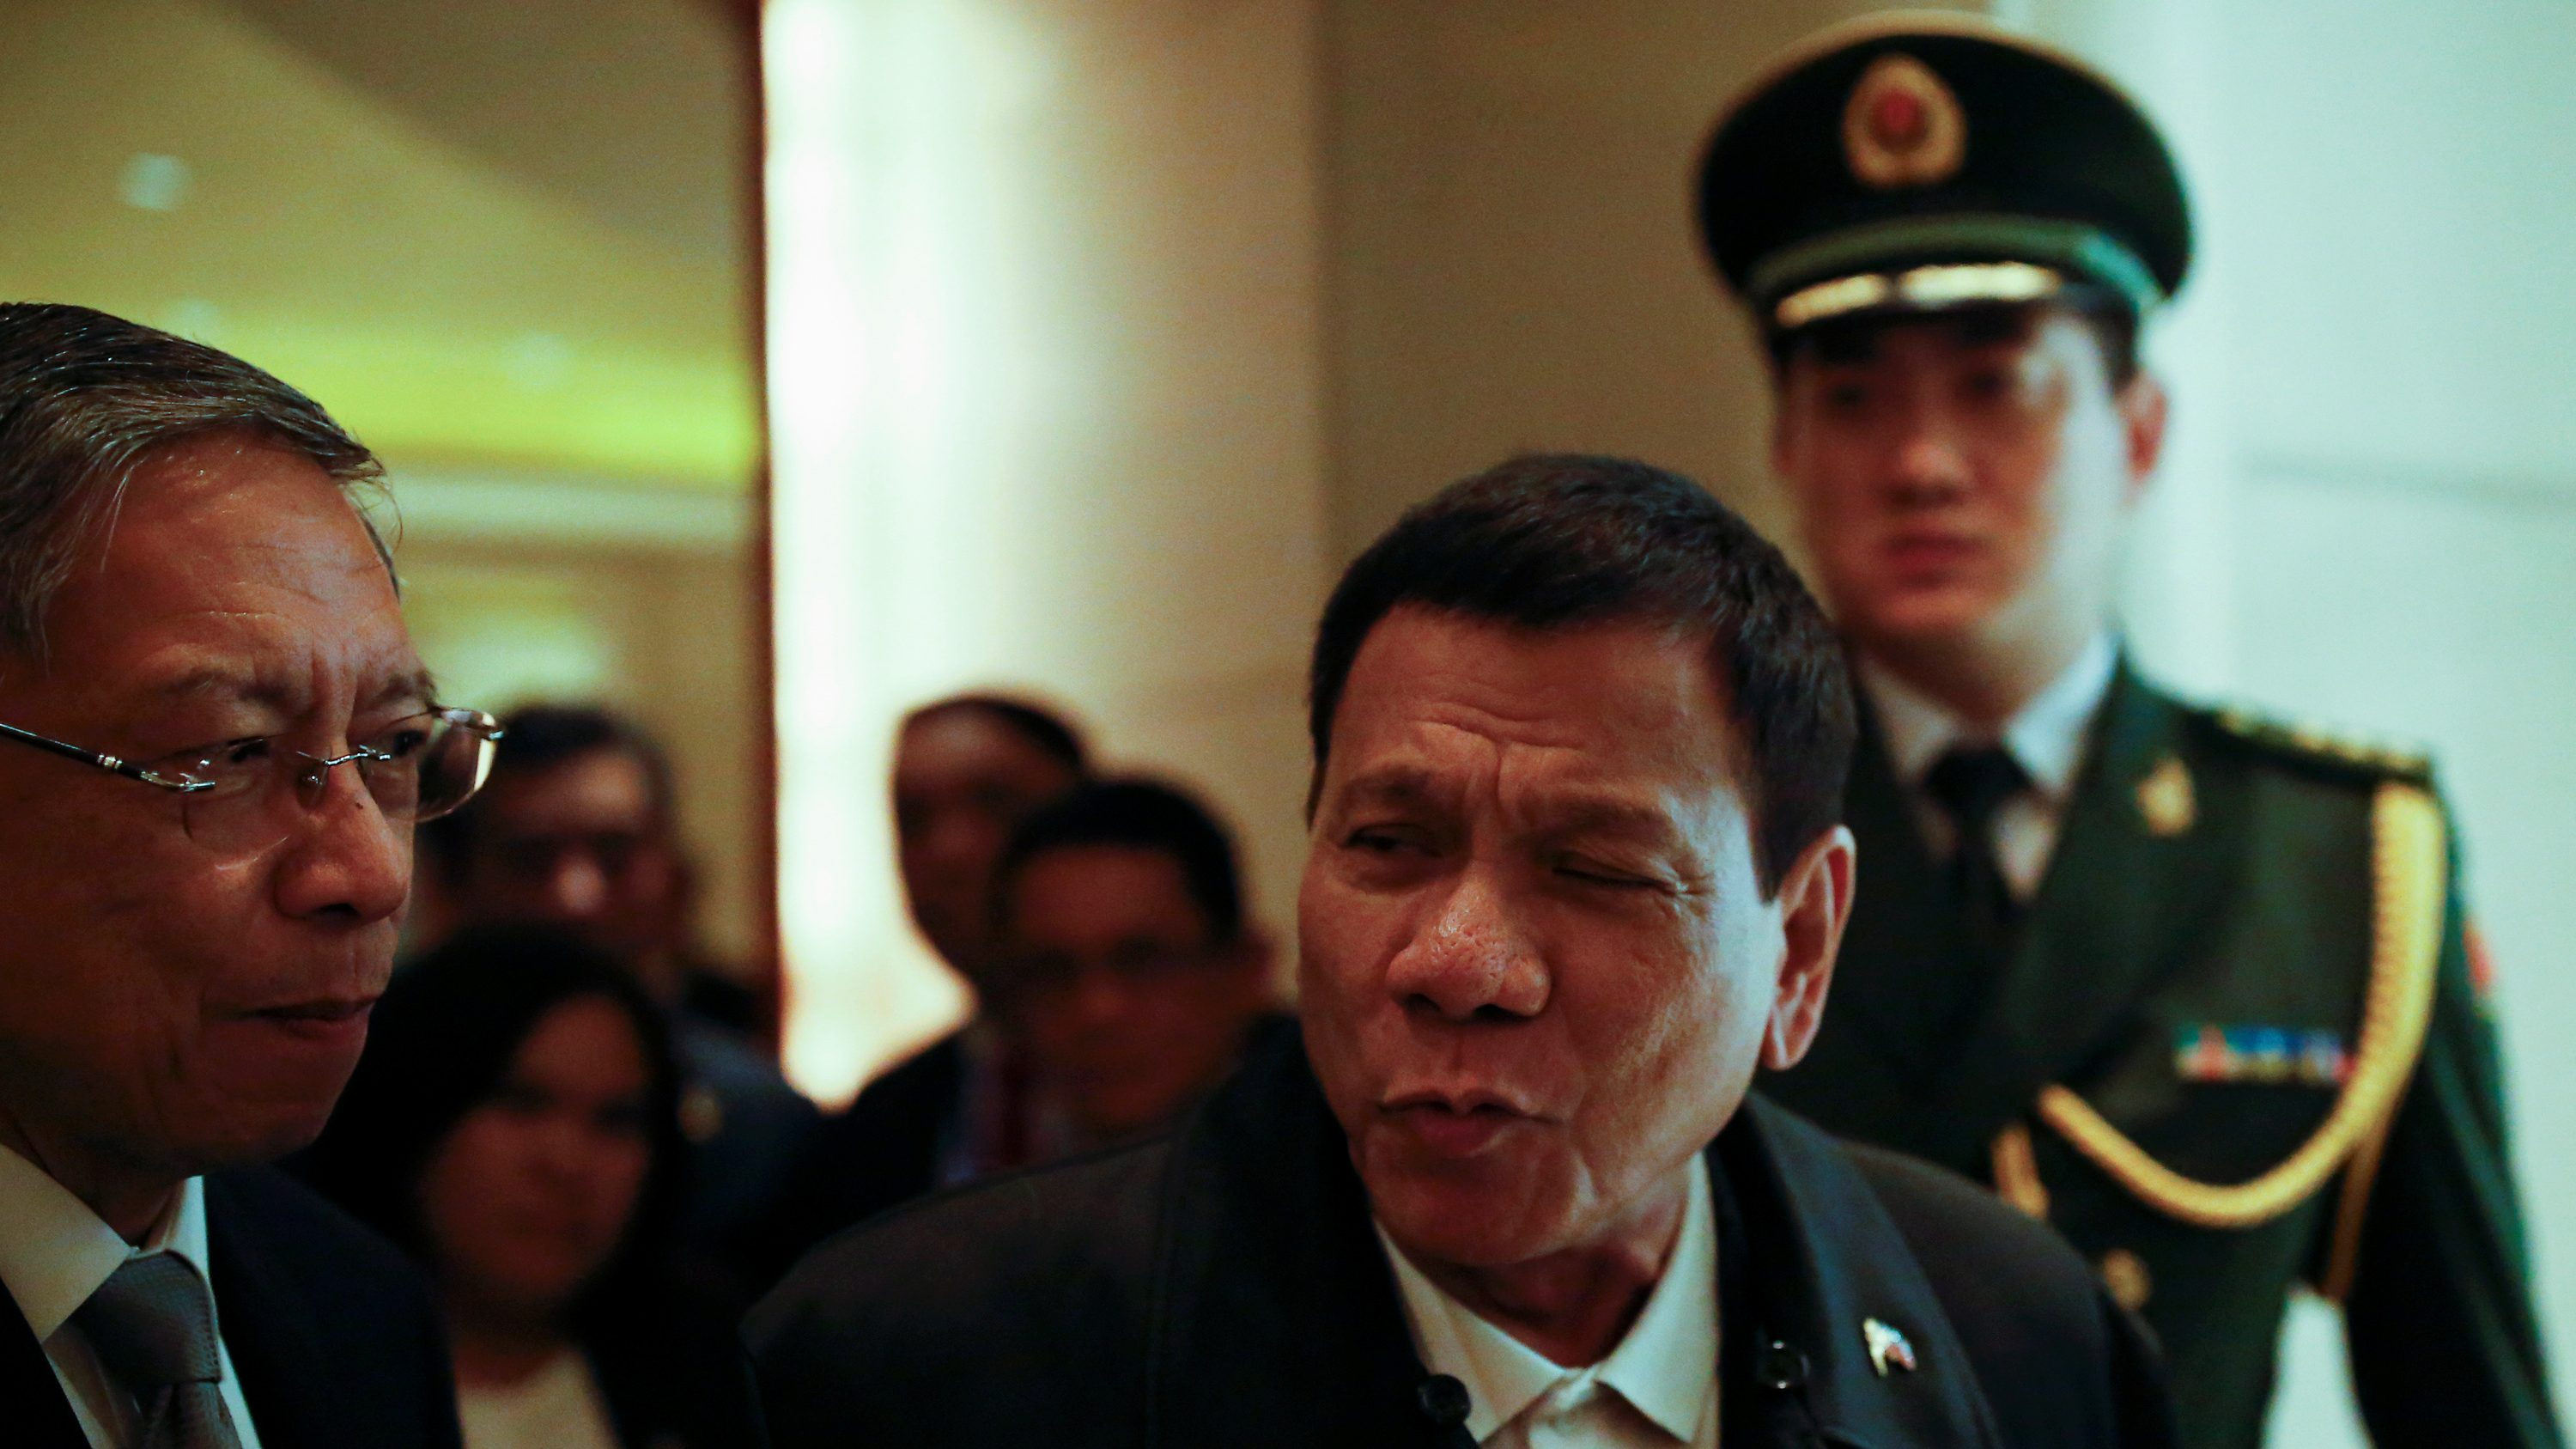 President of the Philippines Rodrigo Duterte (2nd R) arrives at a hotel in Beijing, China, October 18, 2016.  REUTERS/Thomas Peter - RTX2PC5X